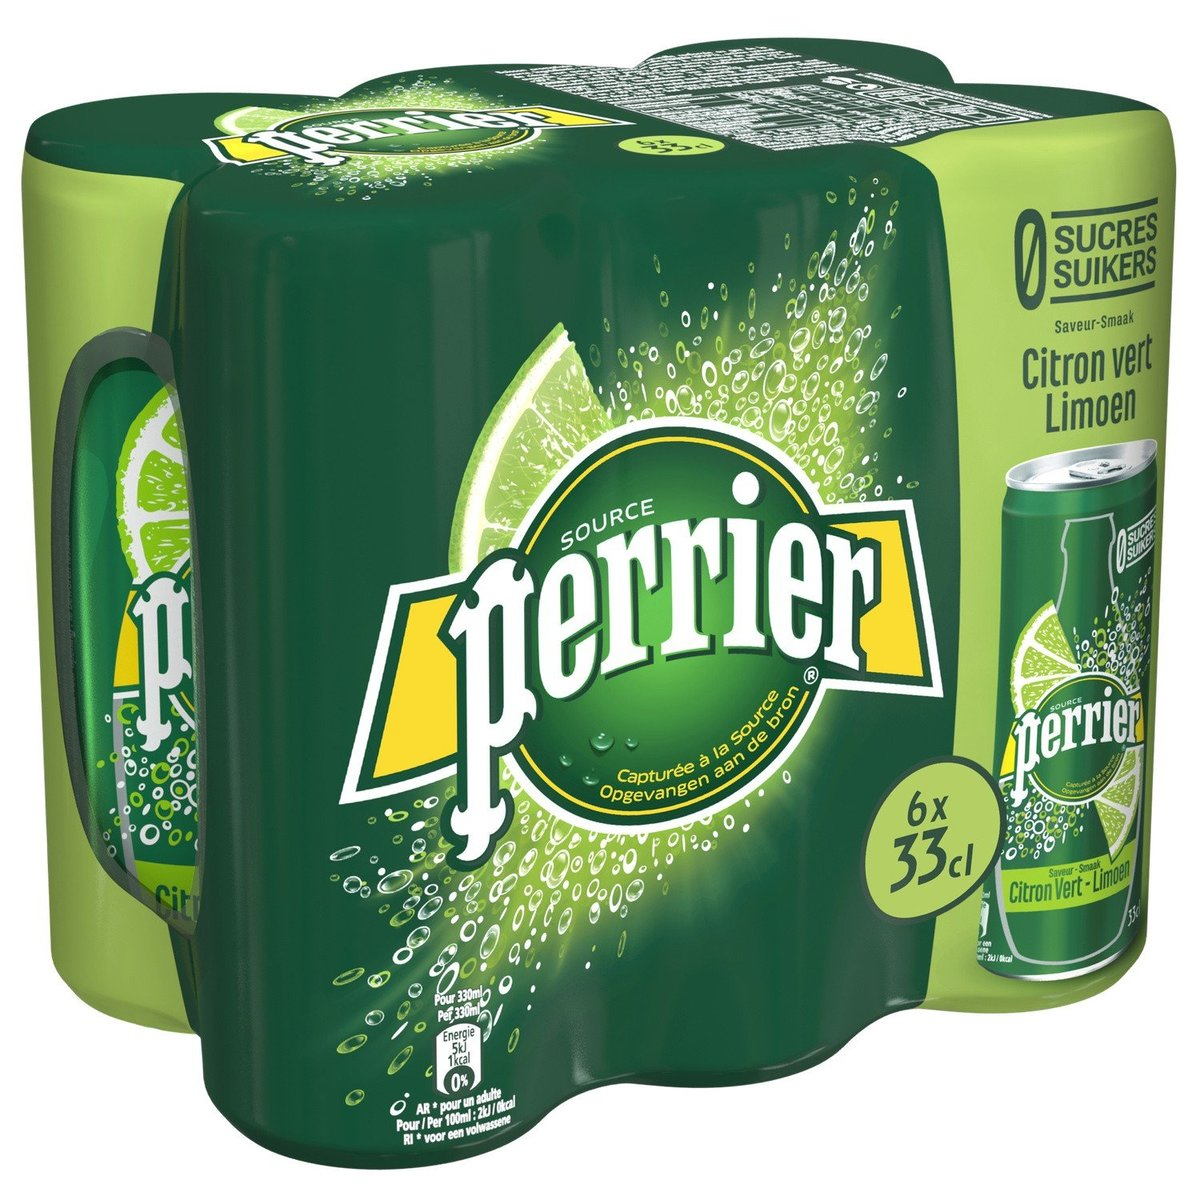 PERRIER - Sparkling Water Lime Sugar Free - 6x330ml